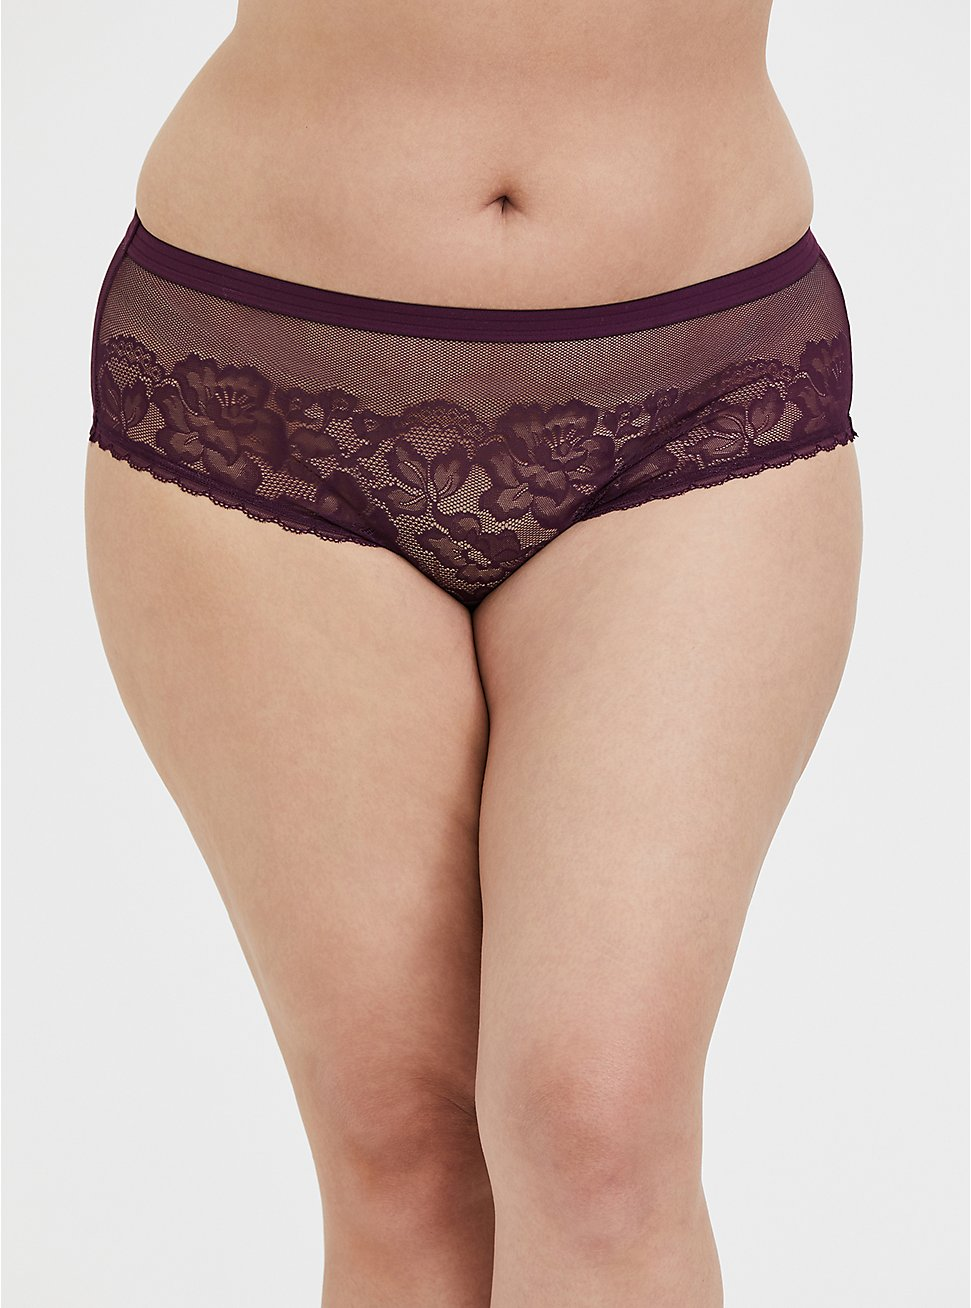 Grape Purple Lace & Mesh Hipster Panty, POTENT PURPLE, hi-res